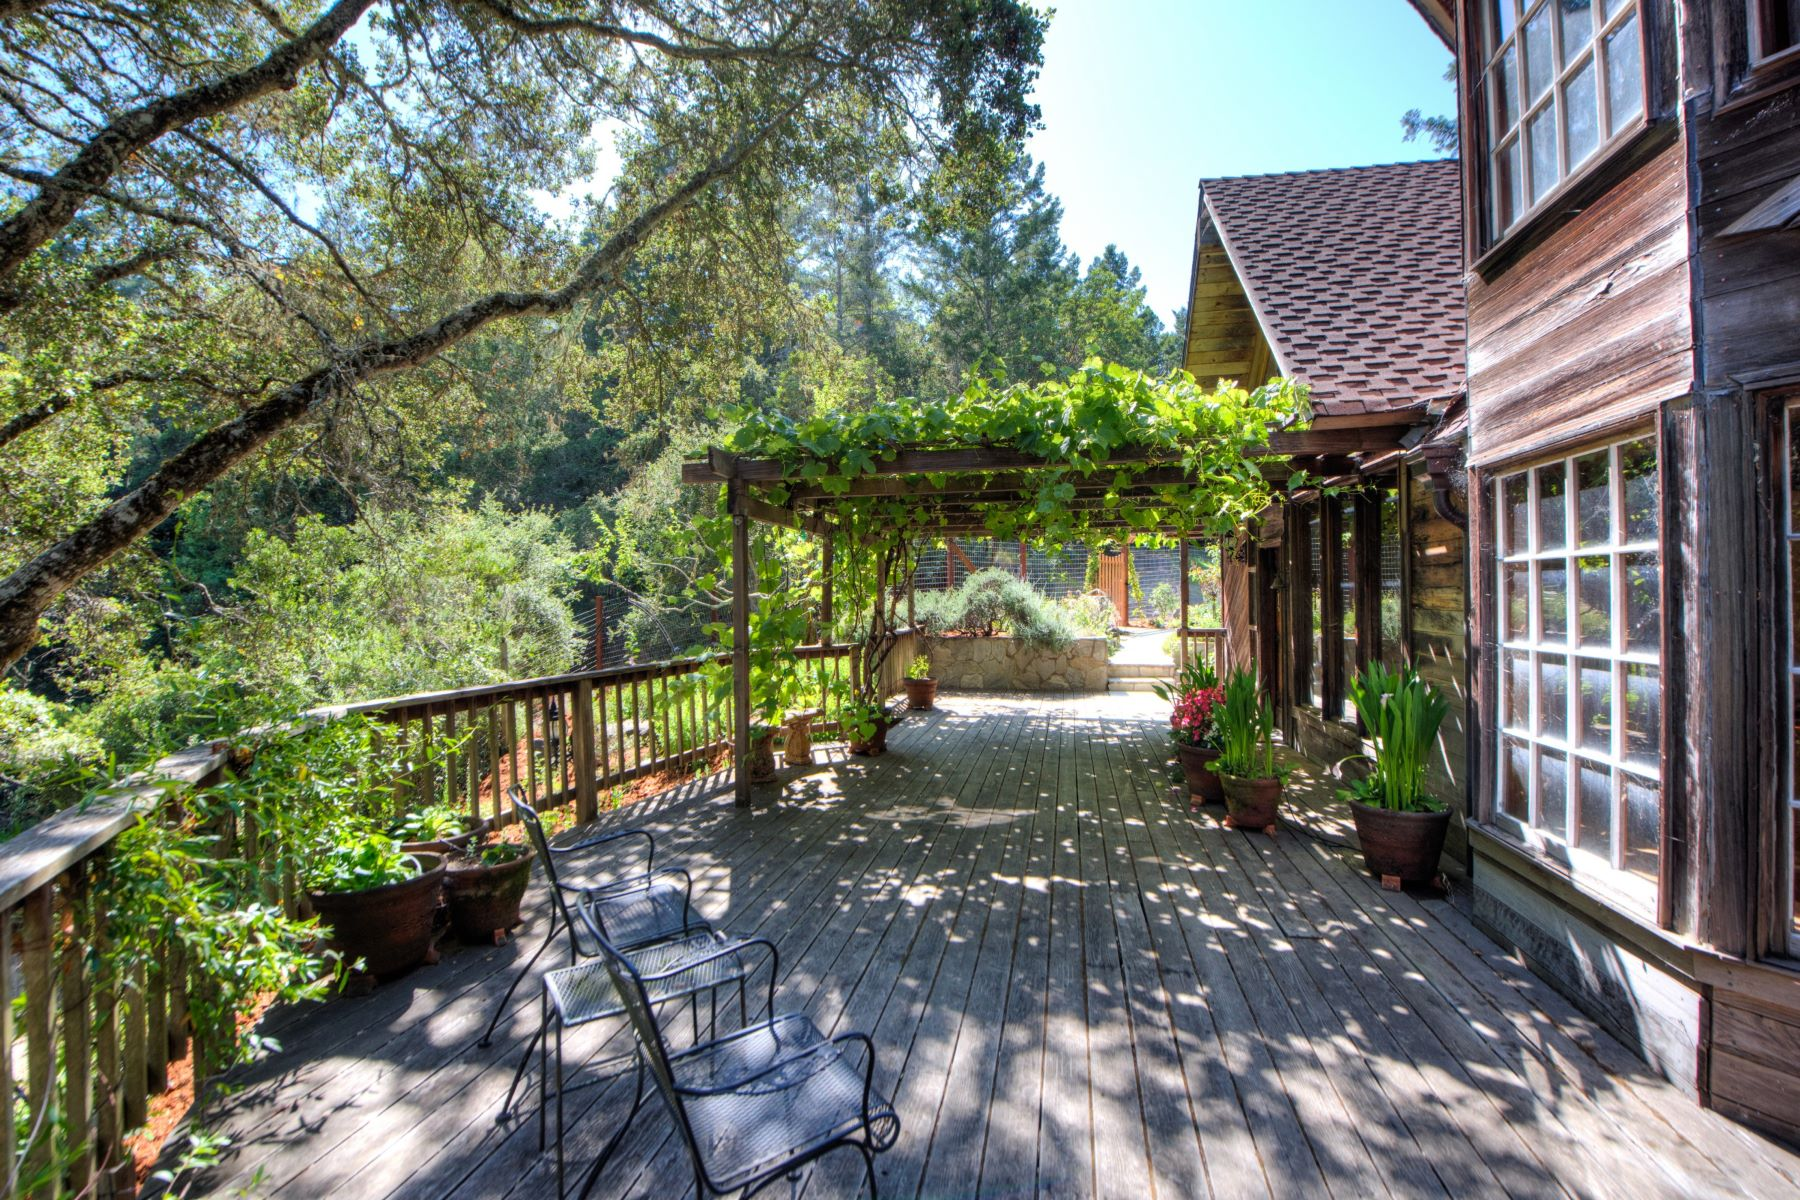 Casa Unifamiliar por un Venta en Enchanting Setting 1949 Nicasio Valley Road Nicasio, California 94946 Estados Unidos